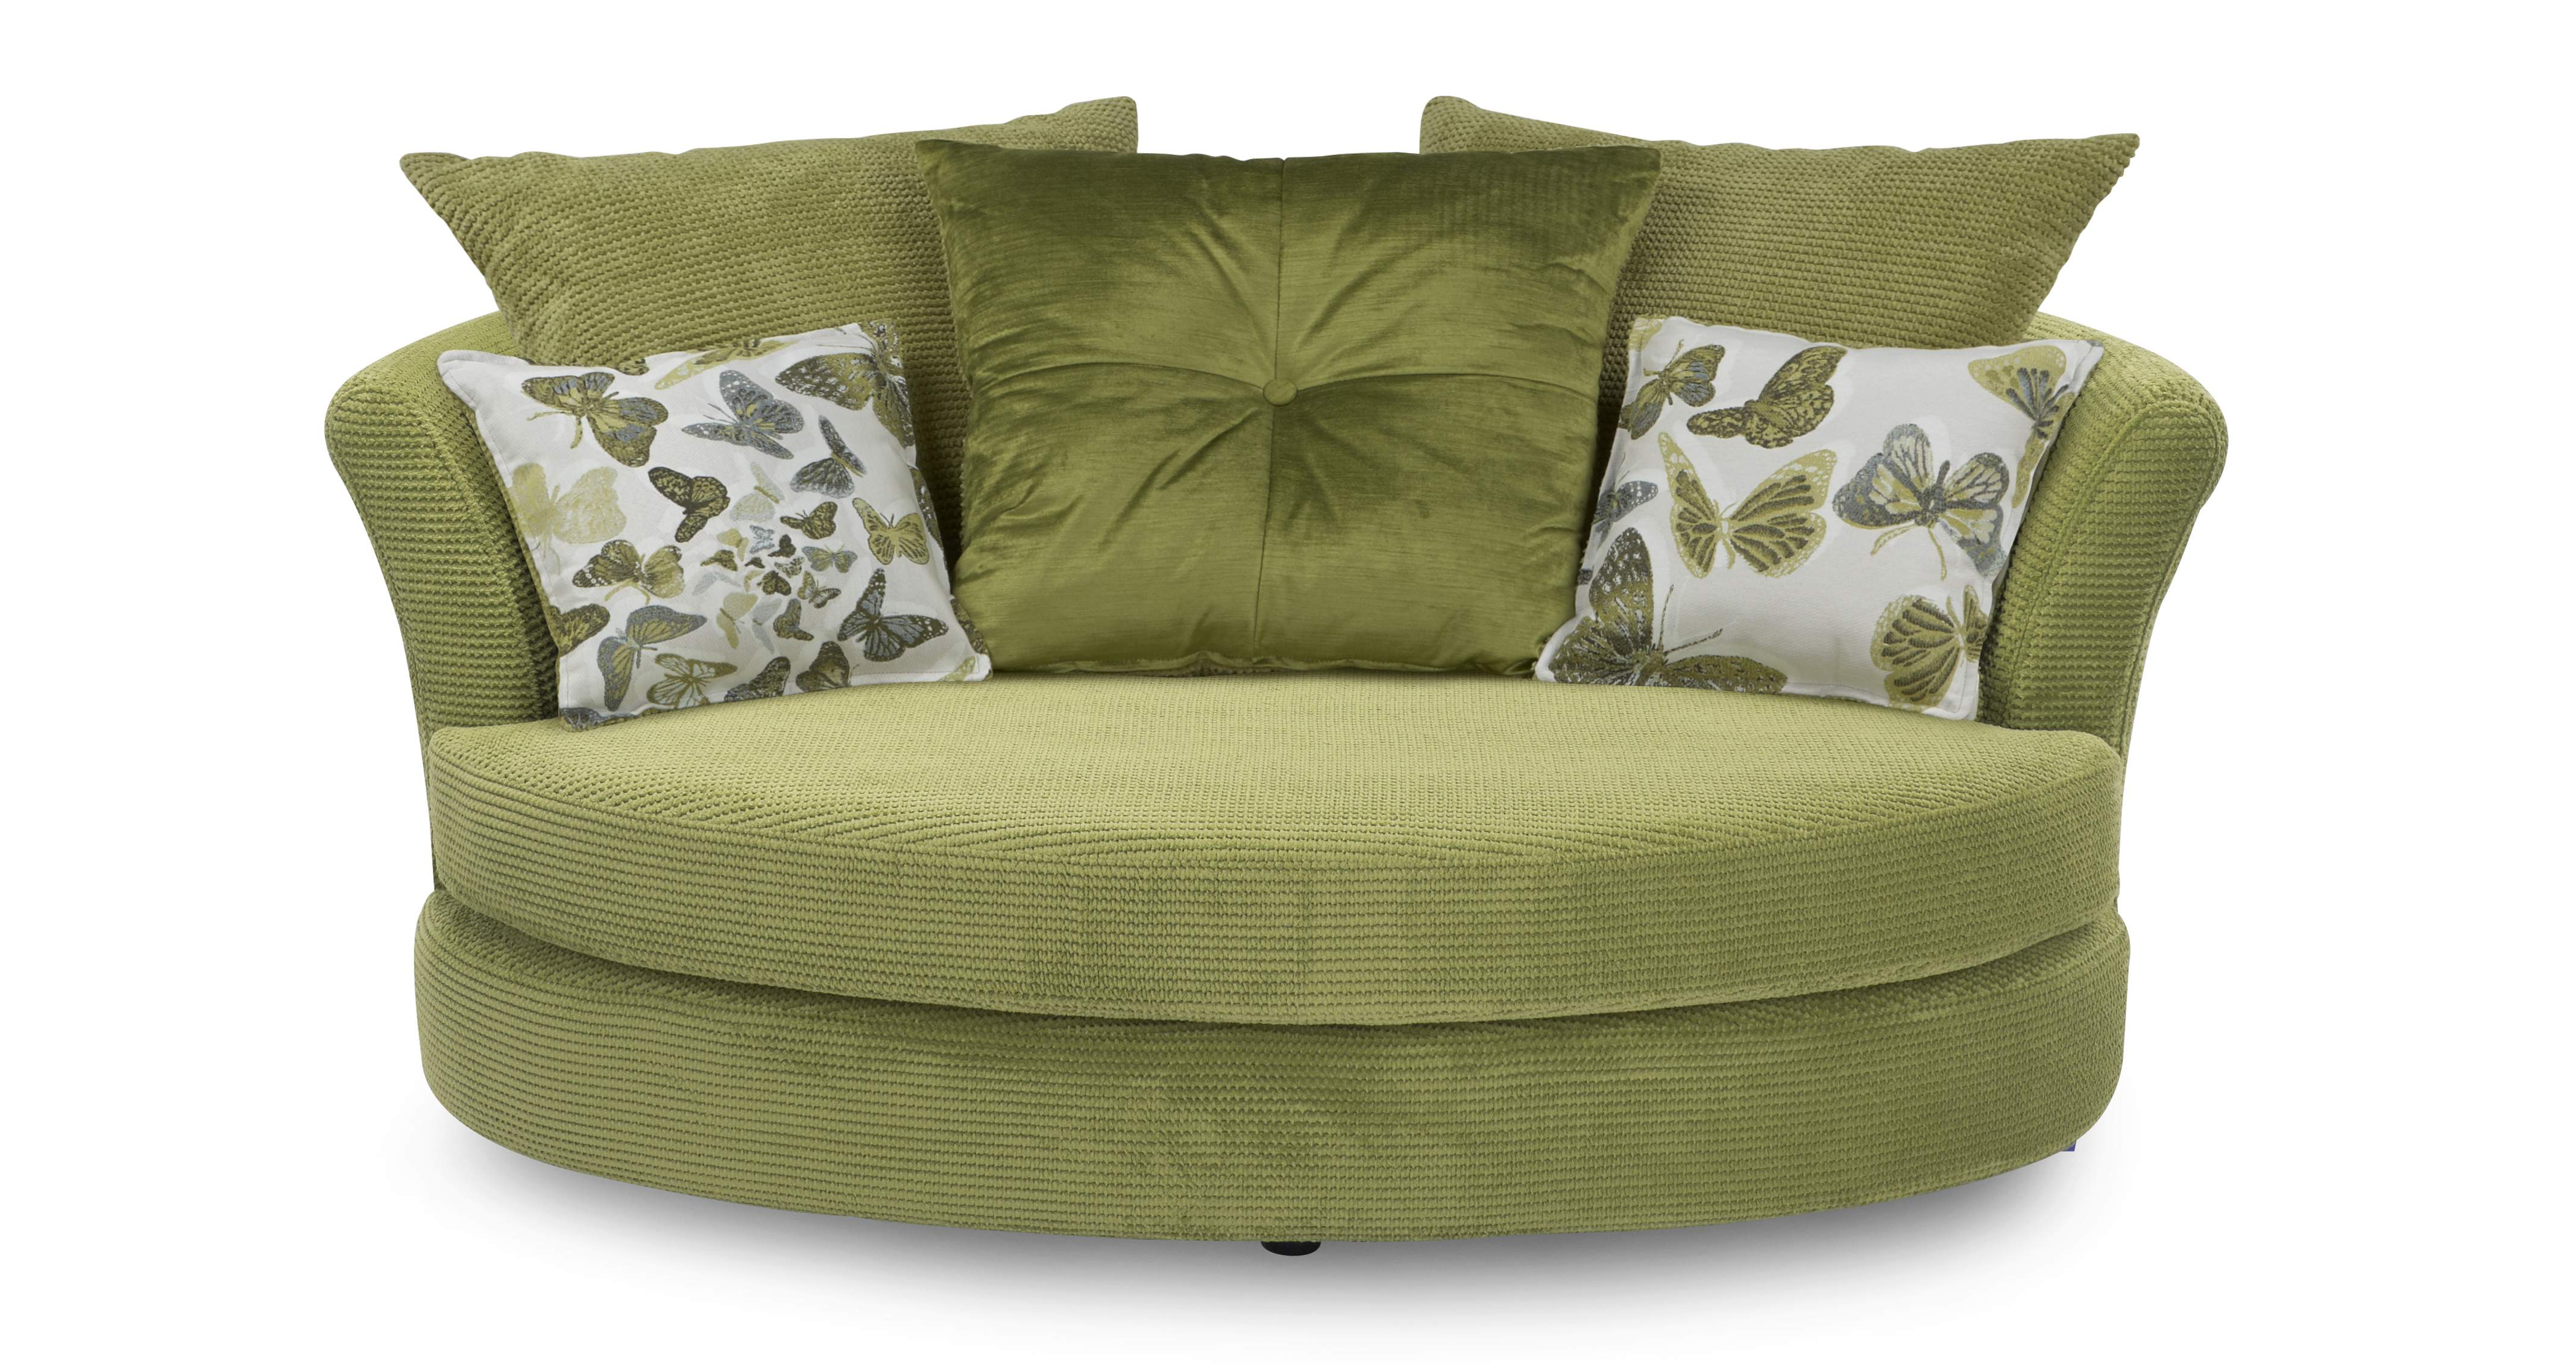 Dfs Escape Set 2 Seater Lime Green Sofa Bed And Cuddler